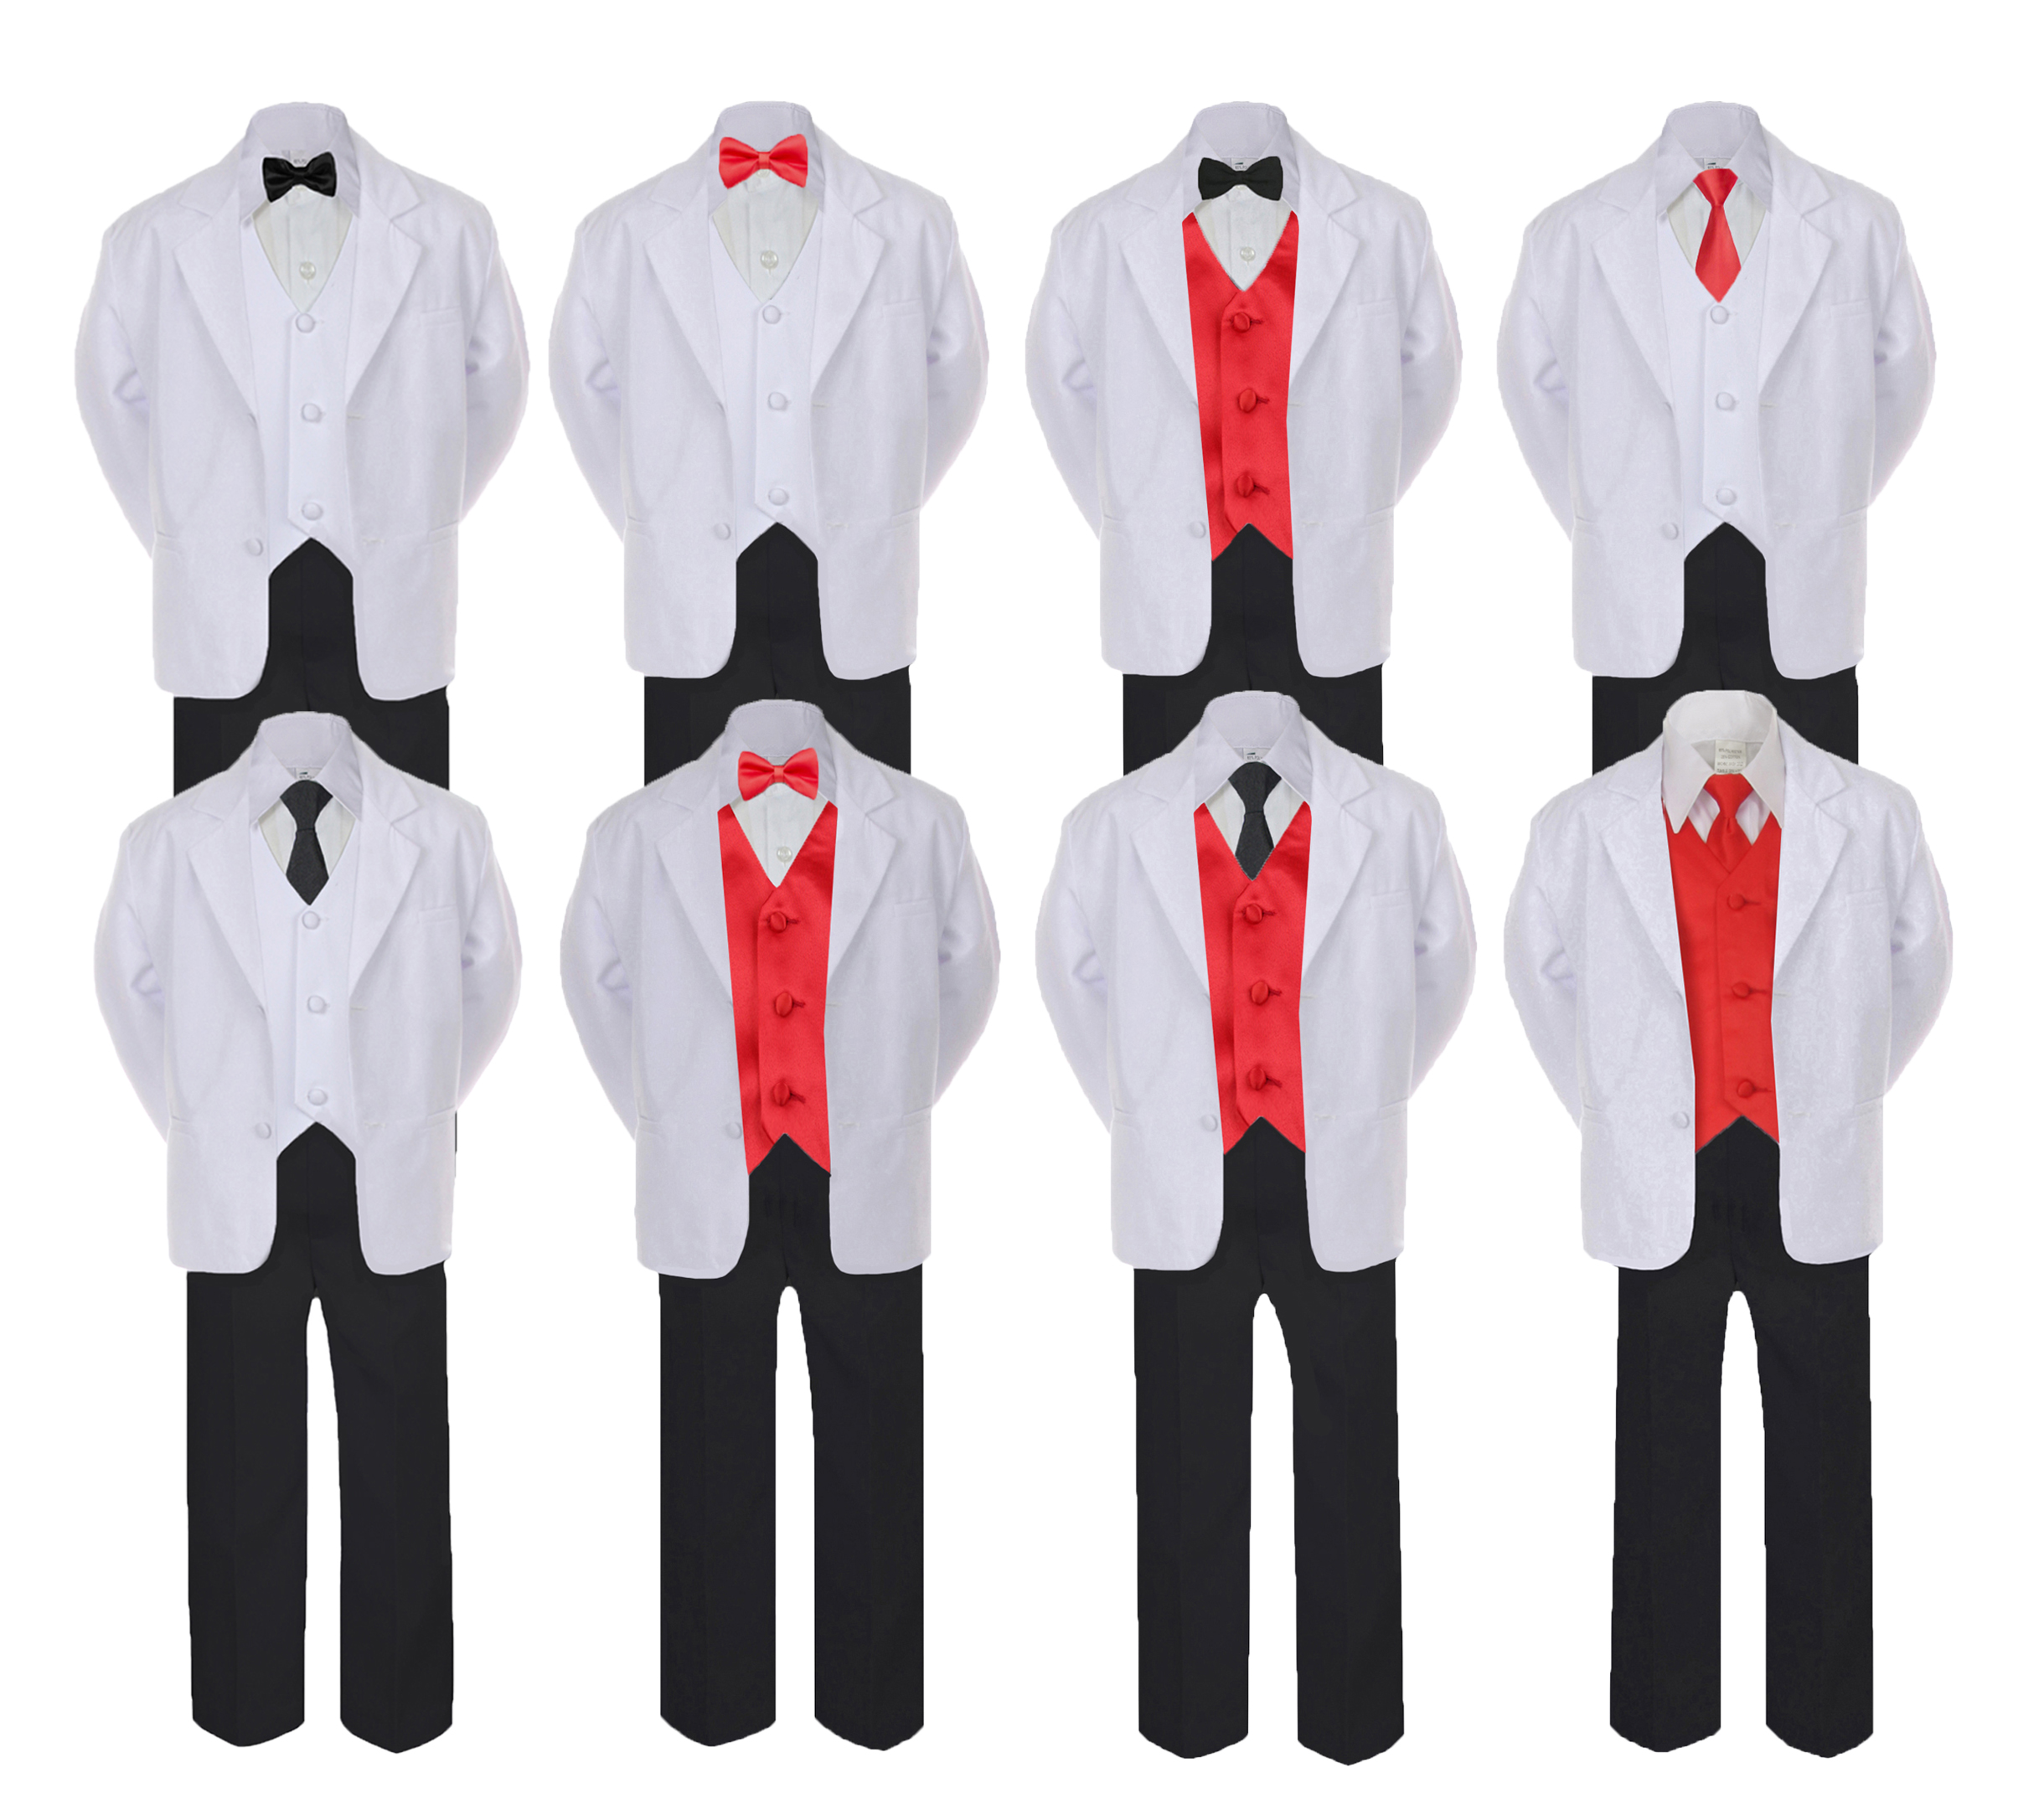 f9cdec092647 5-7pc Formal Black & White Suit Set Red Bow Necktie Vest. Boy Baby Small-20  Teen. 5 pieces set: